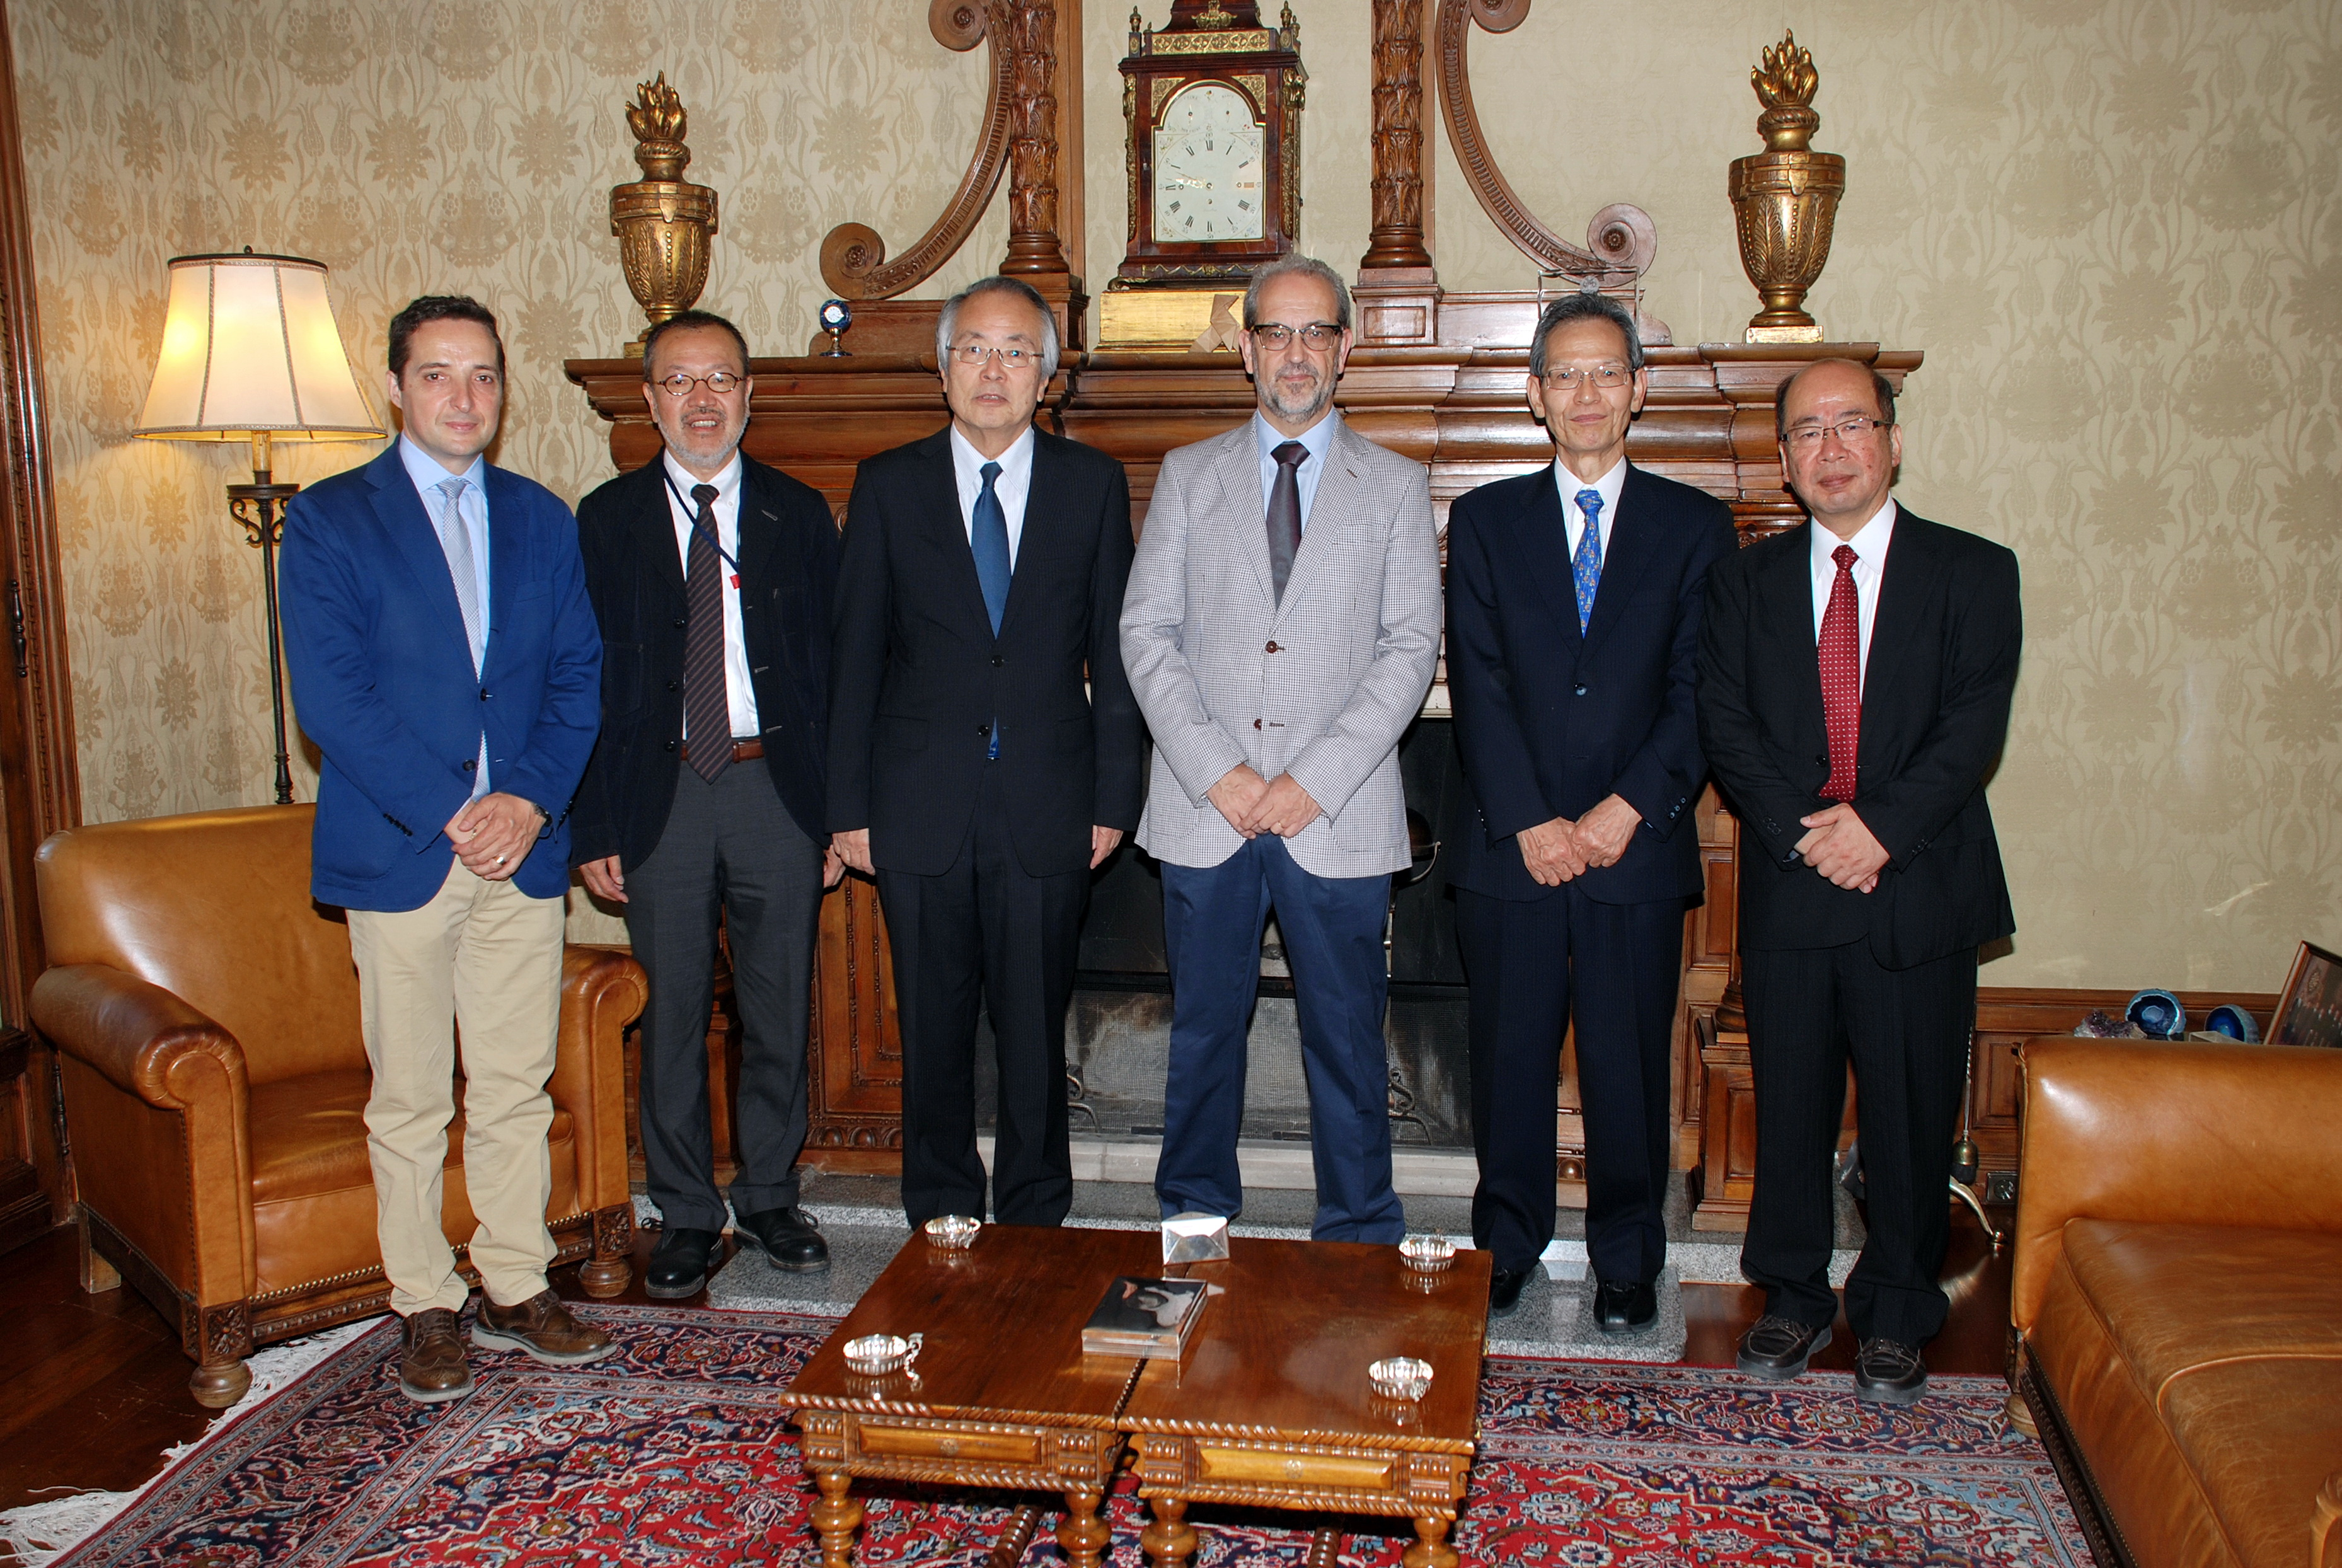 El rector de la Universidad de Salamanca, Daniel Hernández Ruipérez, recibe al rector del Osaka Institute of Technology